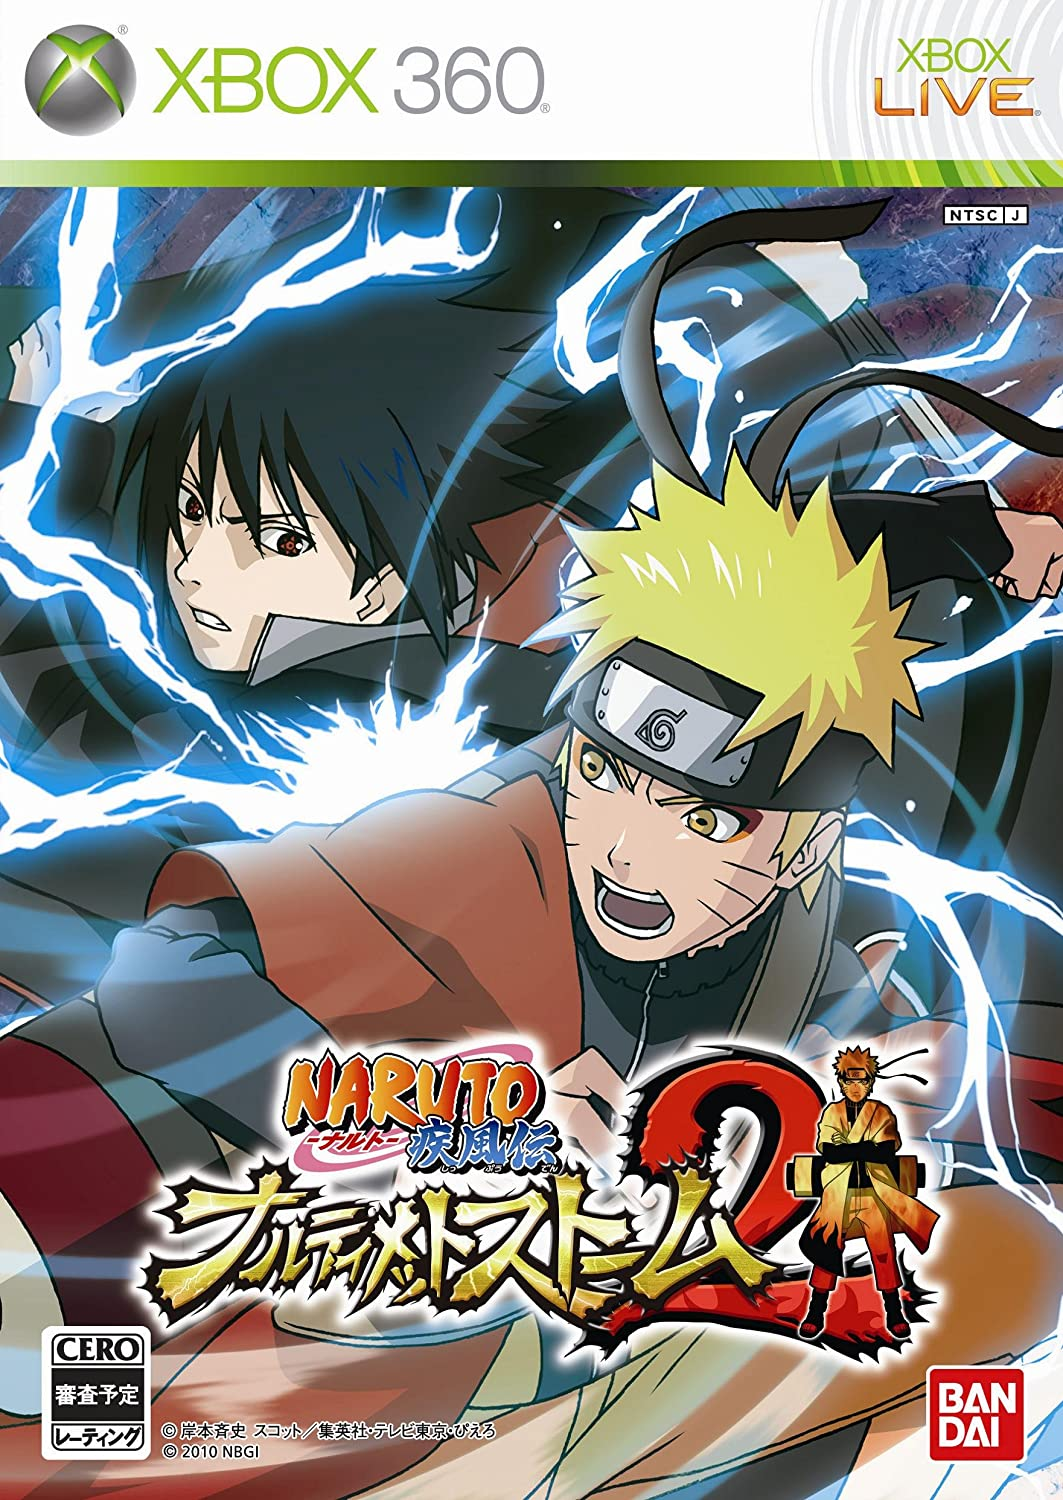 Amazon.com: Naruto Shippuden: Ultimate Ninja Storm 2 [Japan ...